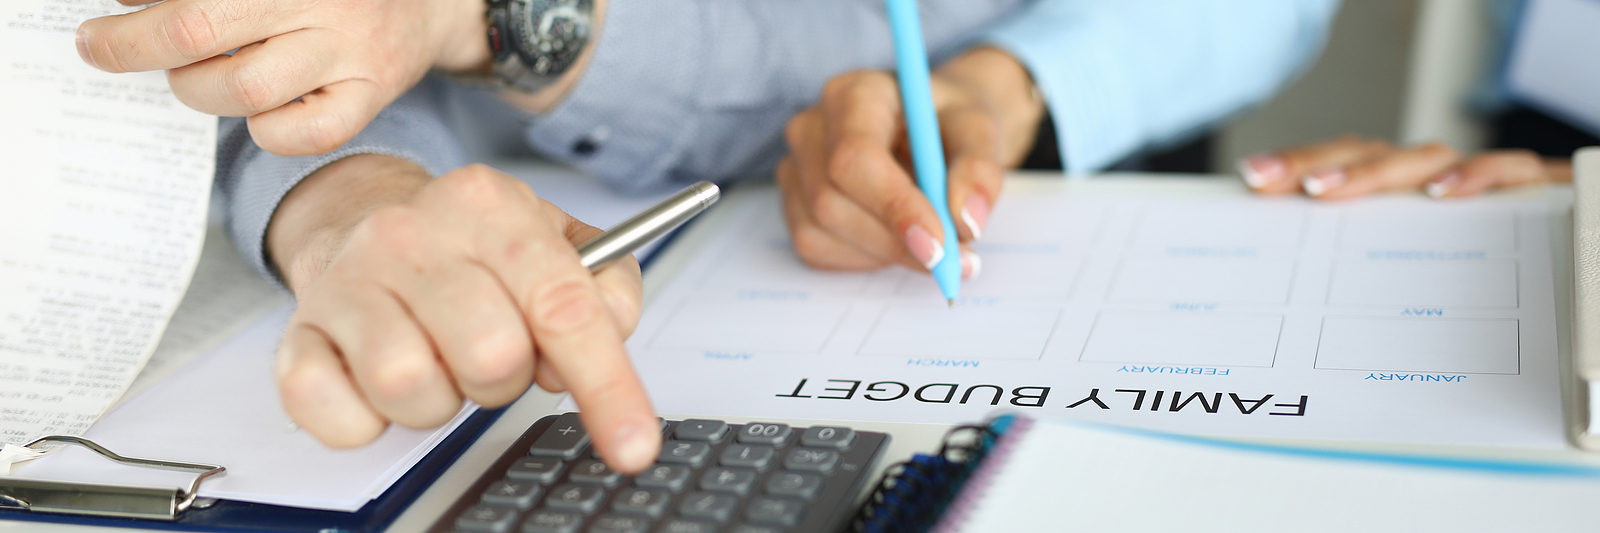 personal loan guide and calculator